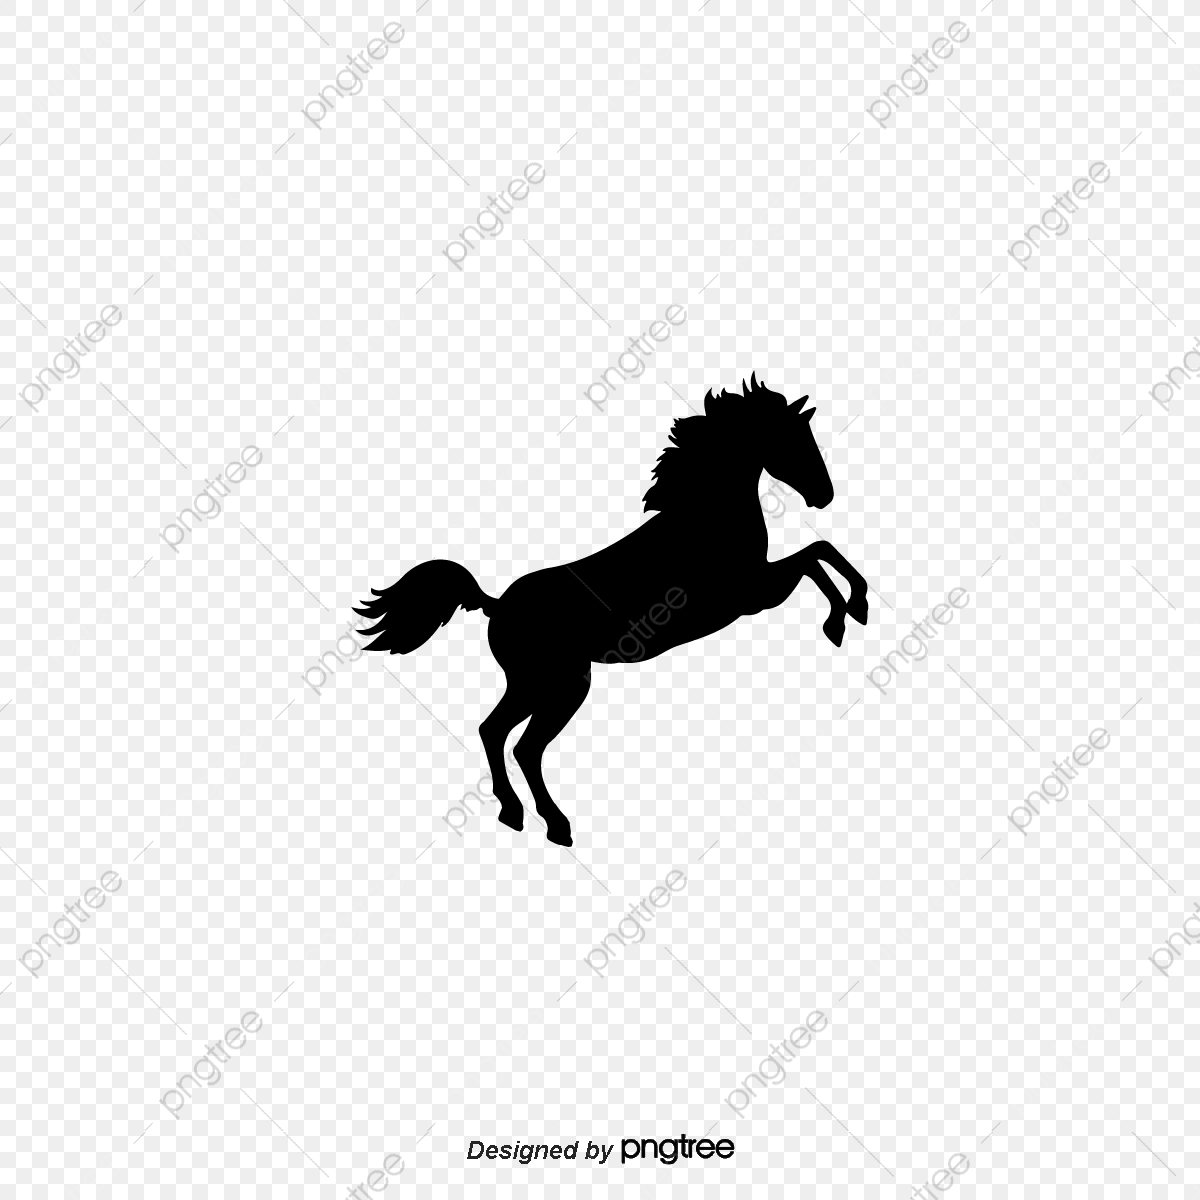 Simple Elements Of Horse Running And Jumping Silhouette Horse Clipart Silhouette Running Png And Vector With Transparent Background For Free Download